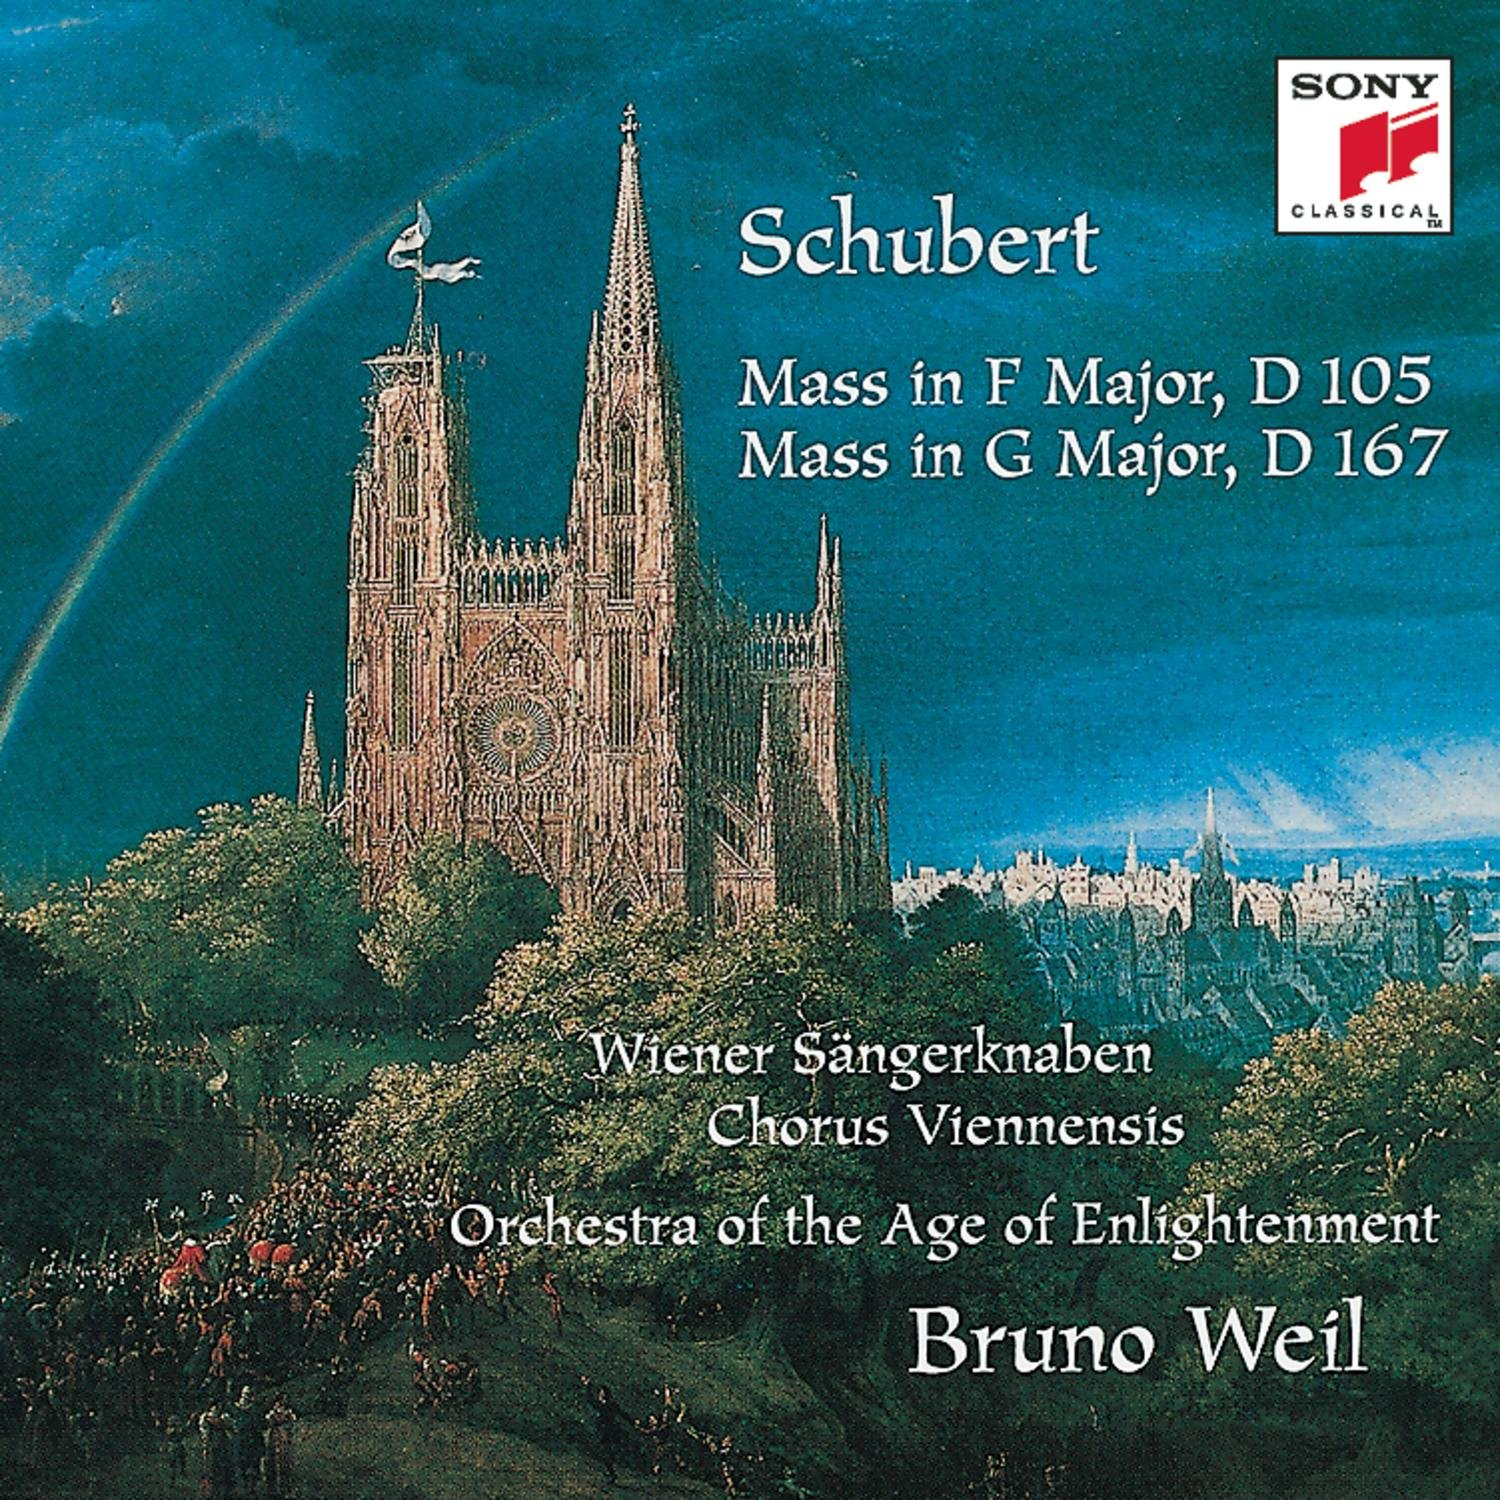 Special price for a limited time Schubert: Mass in F Major D167 D105 G Don't miss the campaign